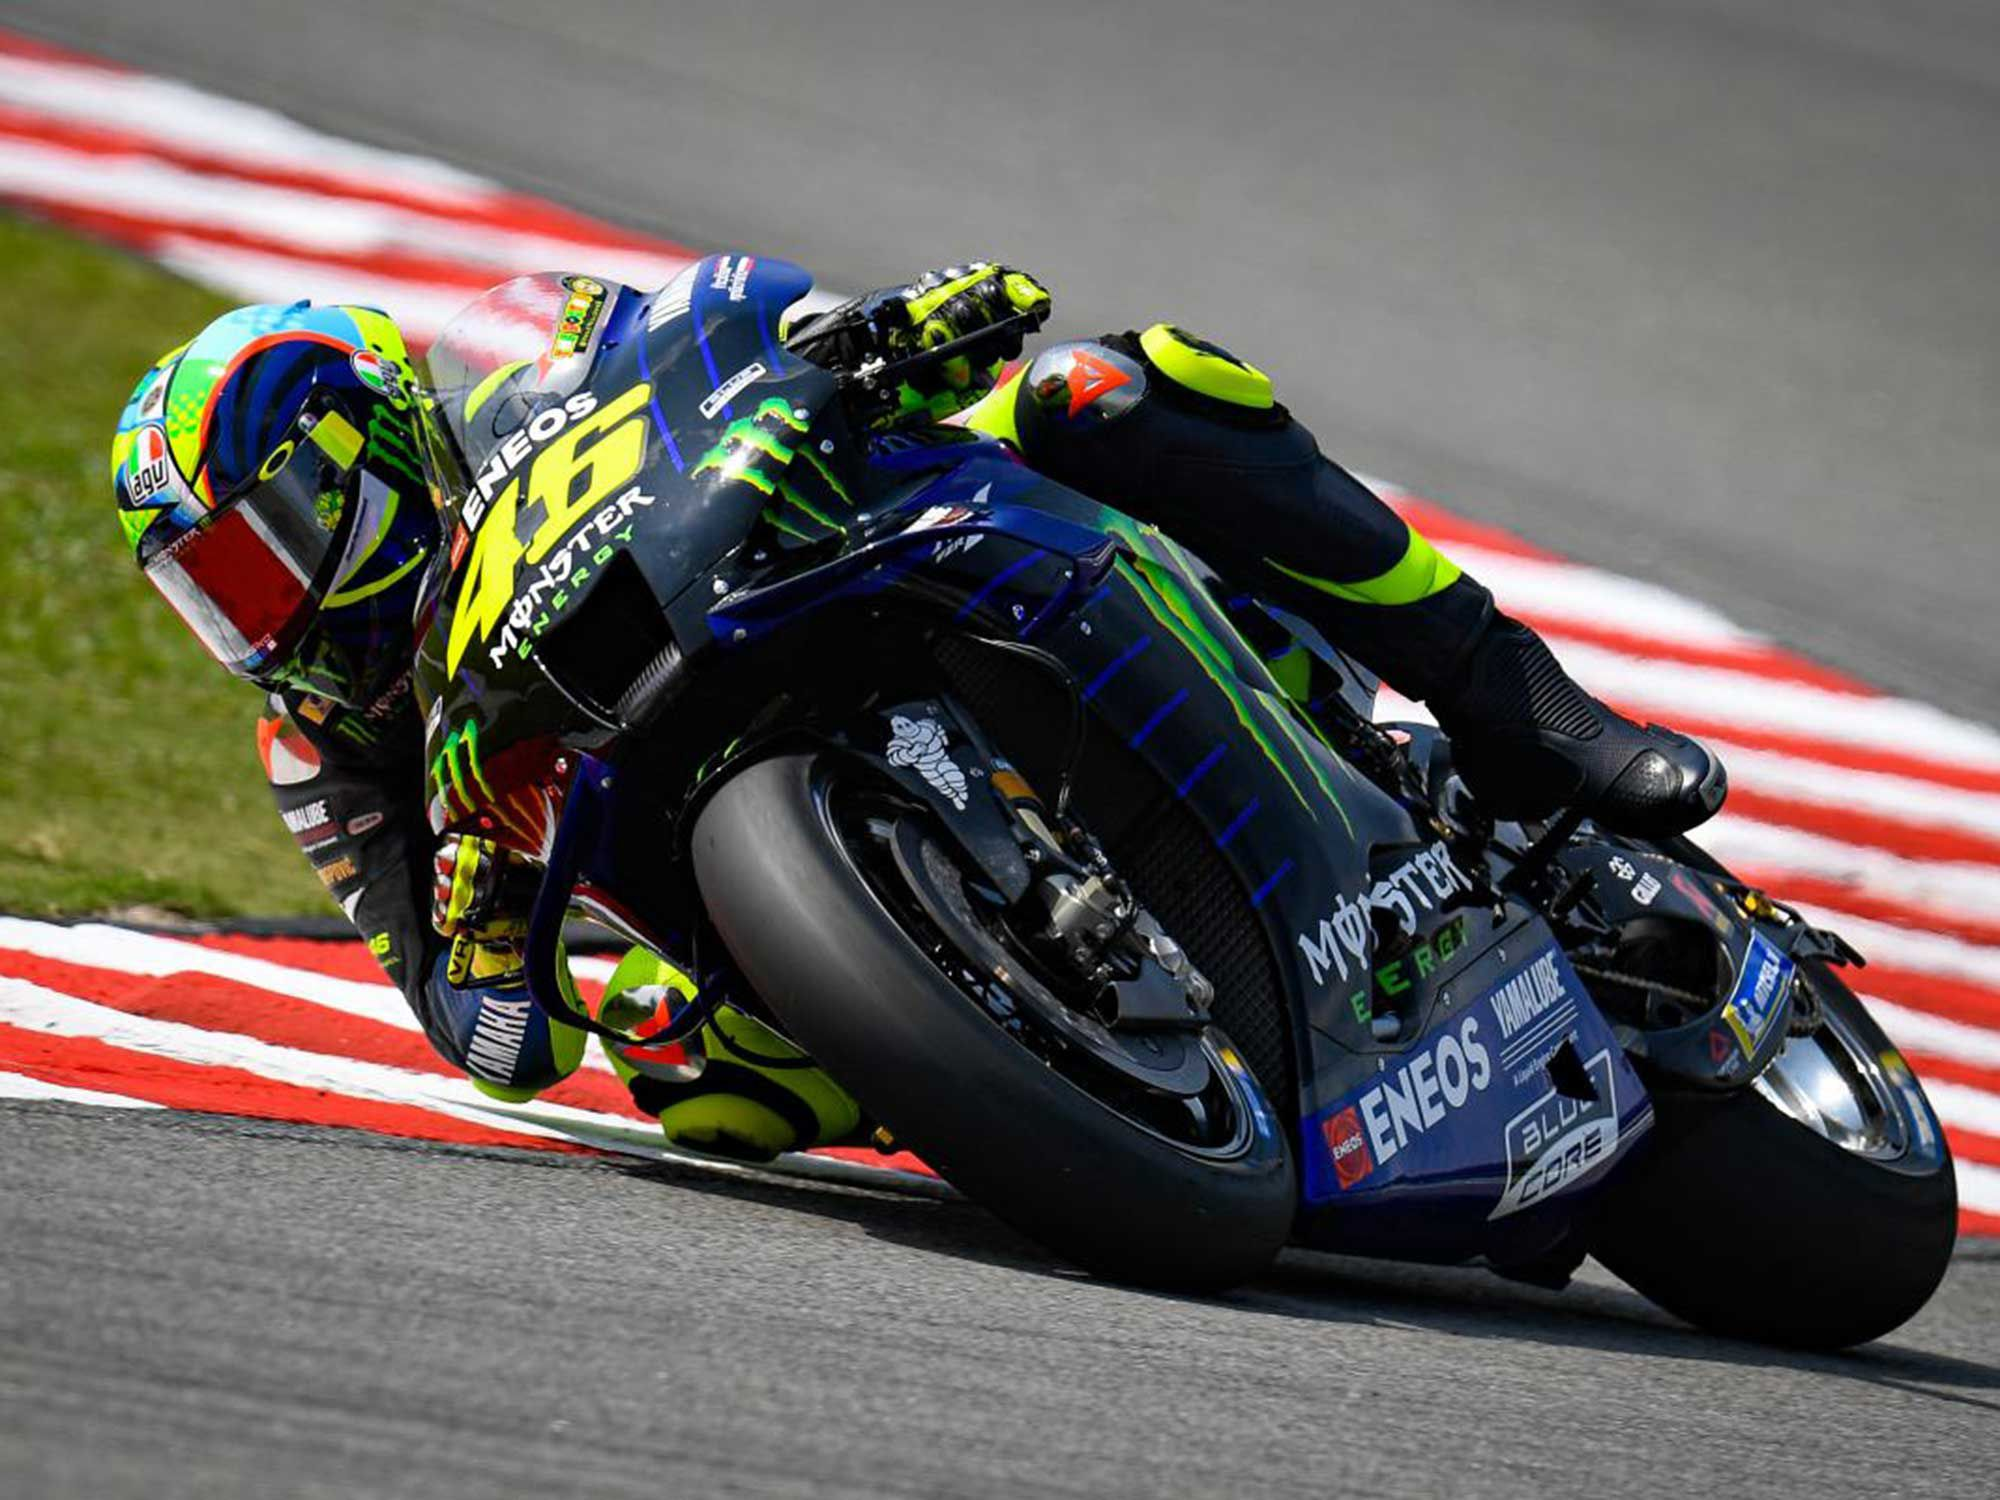 Rossi requested chassis, suspension, and electronics changes to better address rear tire degradation.